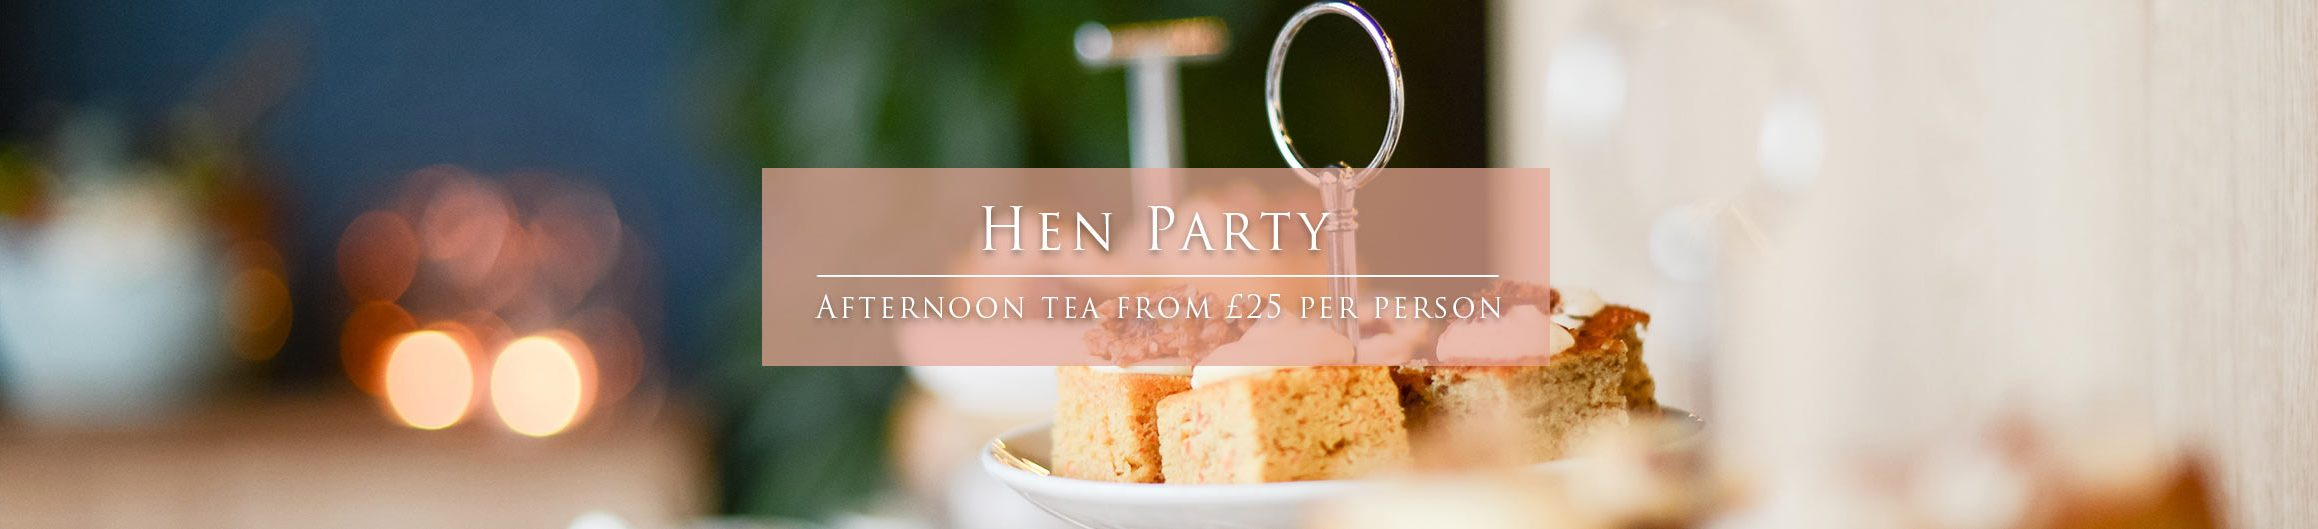 Hen Party Afternoon Tea Offer Homepage Slider Image